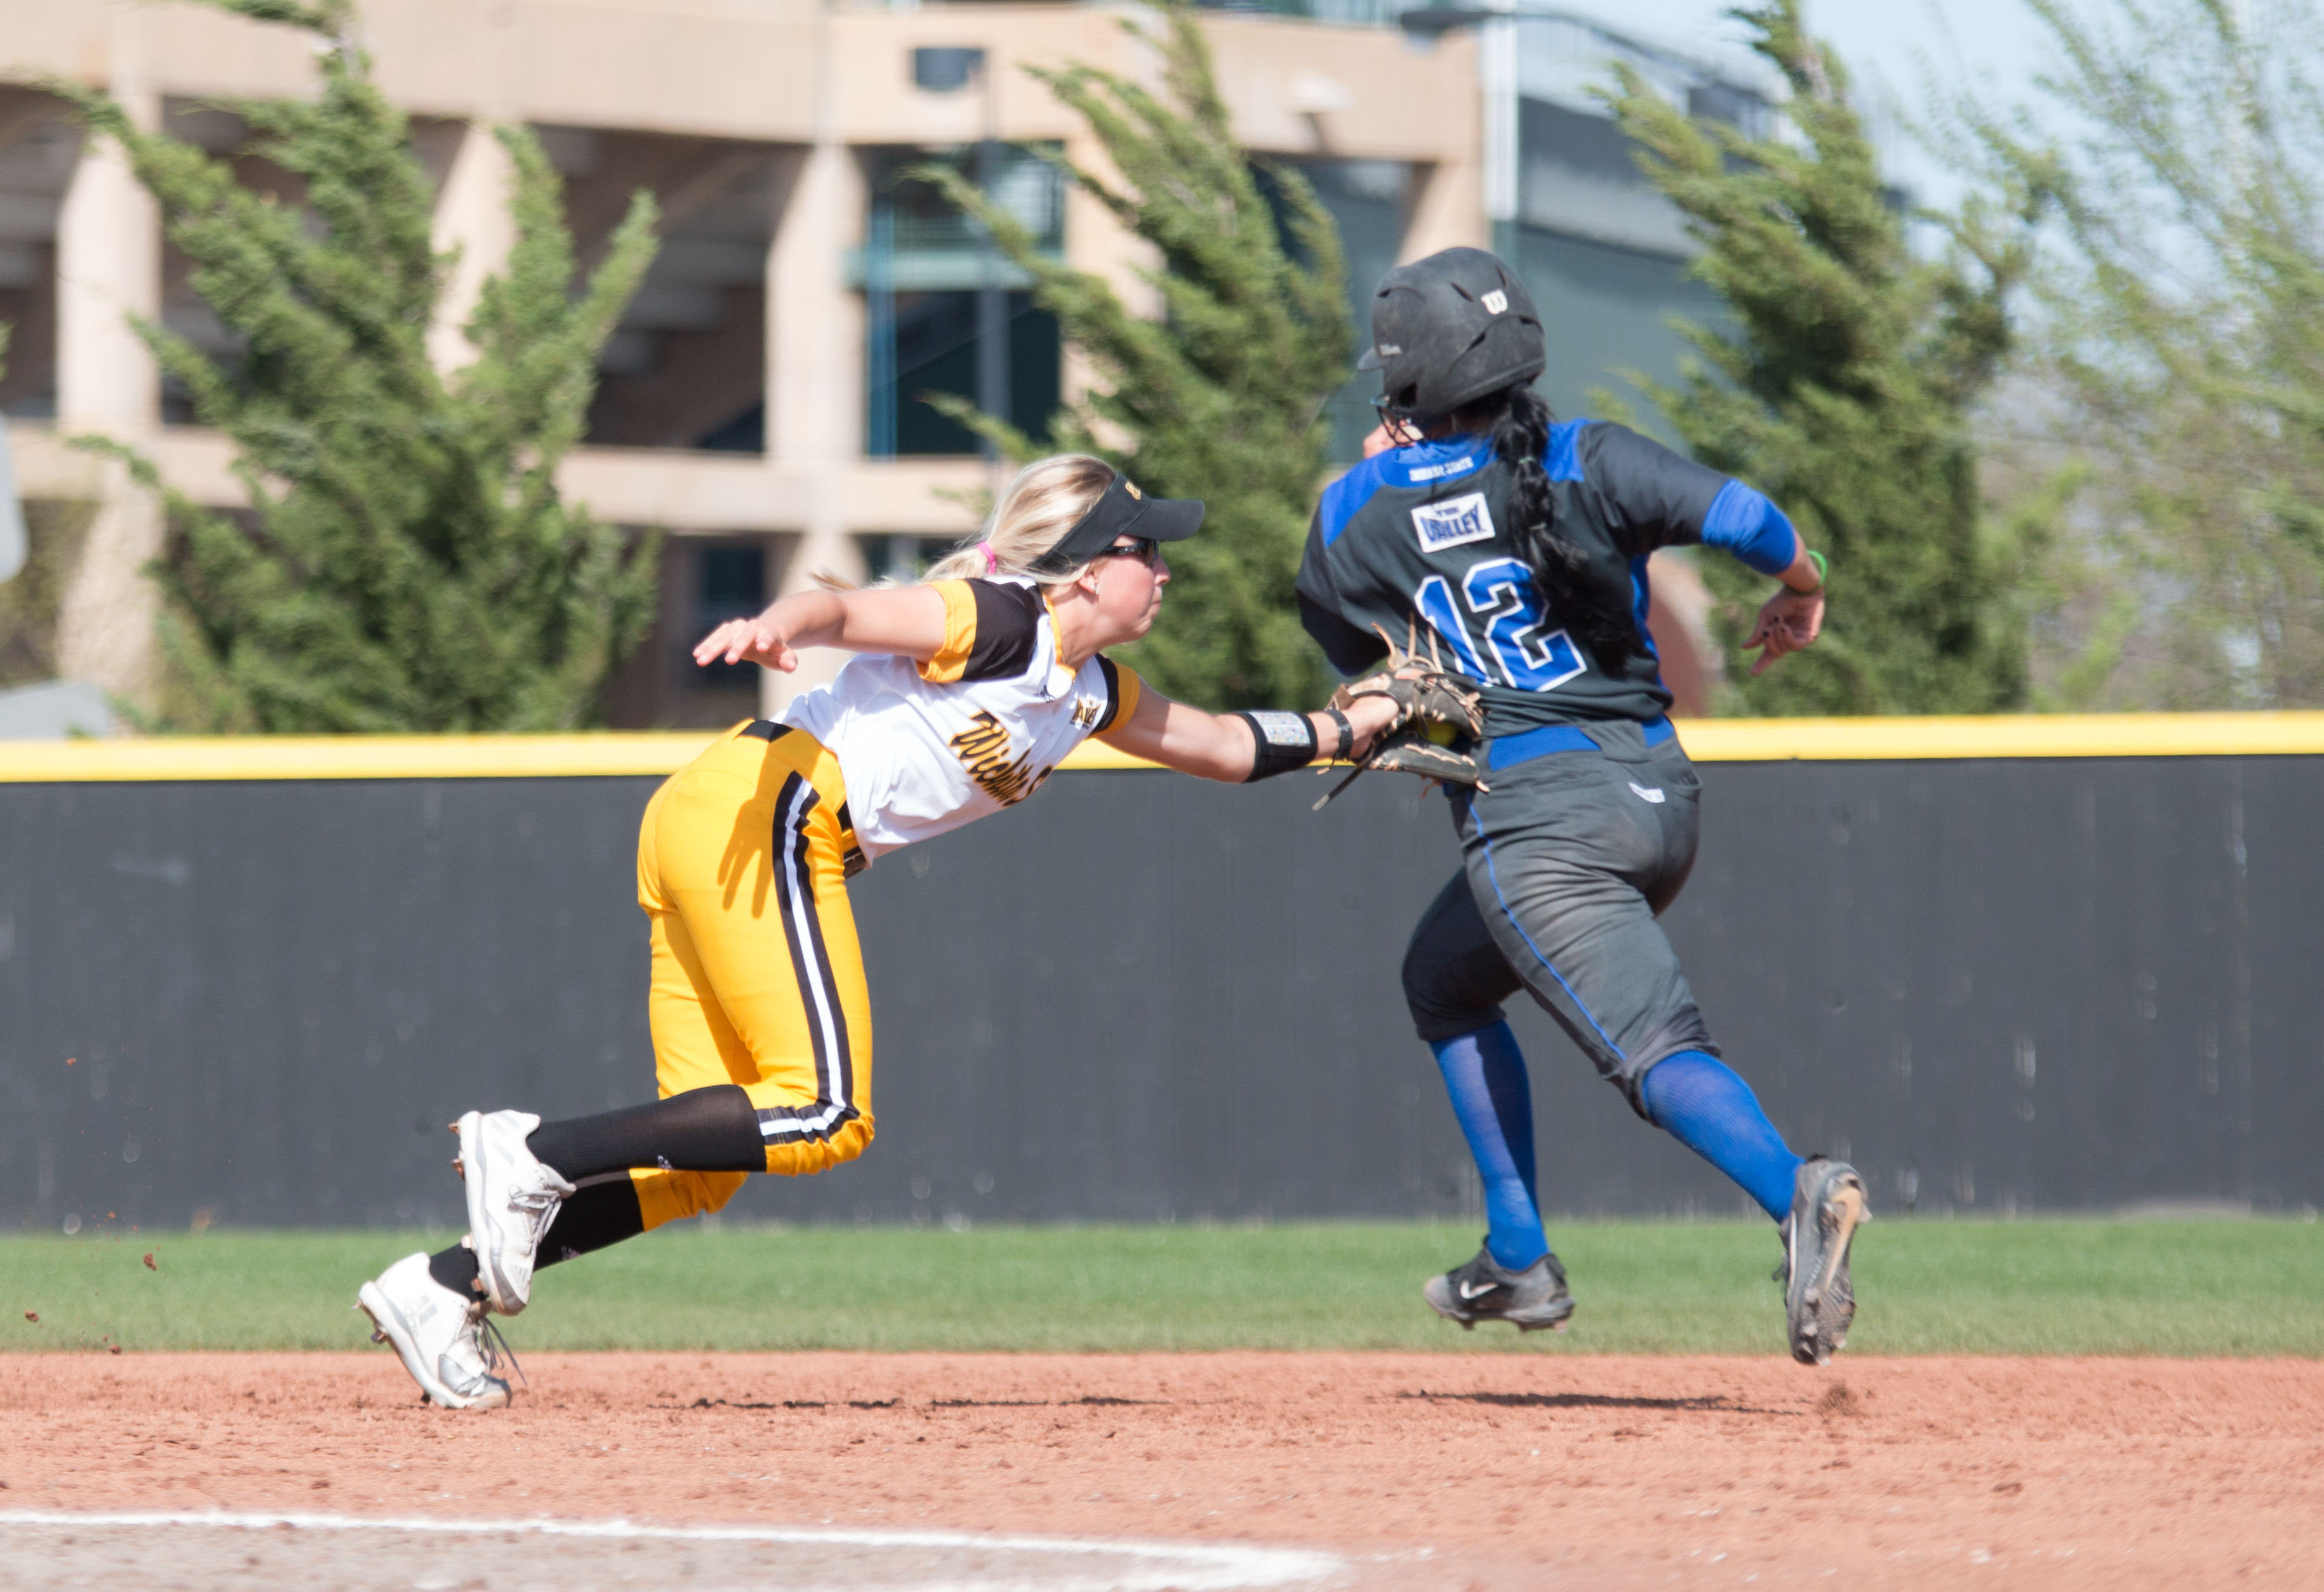 Senior Kelli Spring tags an Indiana State player during a double play in the top of the fifth inning of Friday's first game.